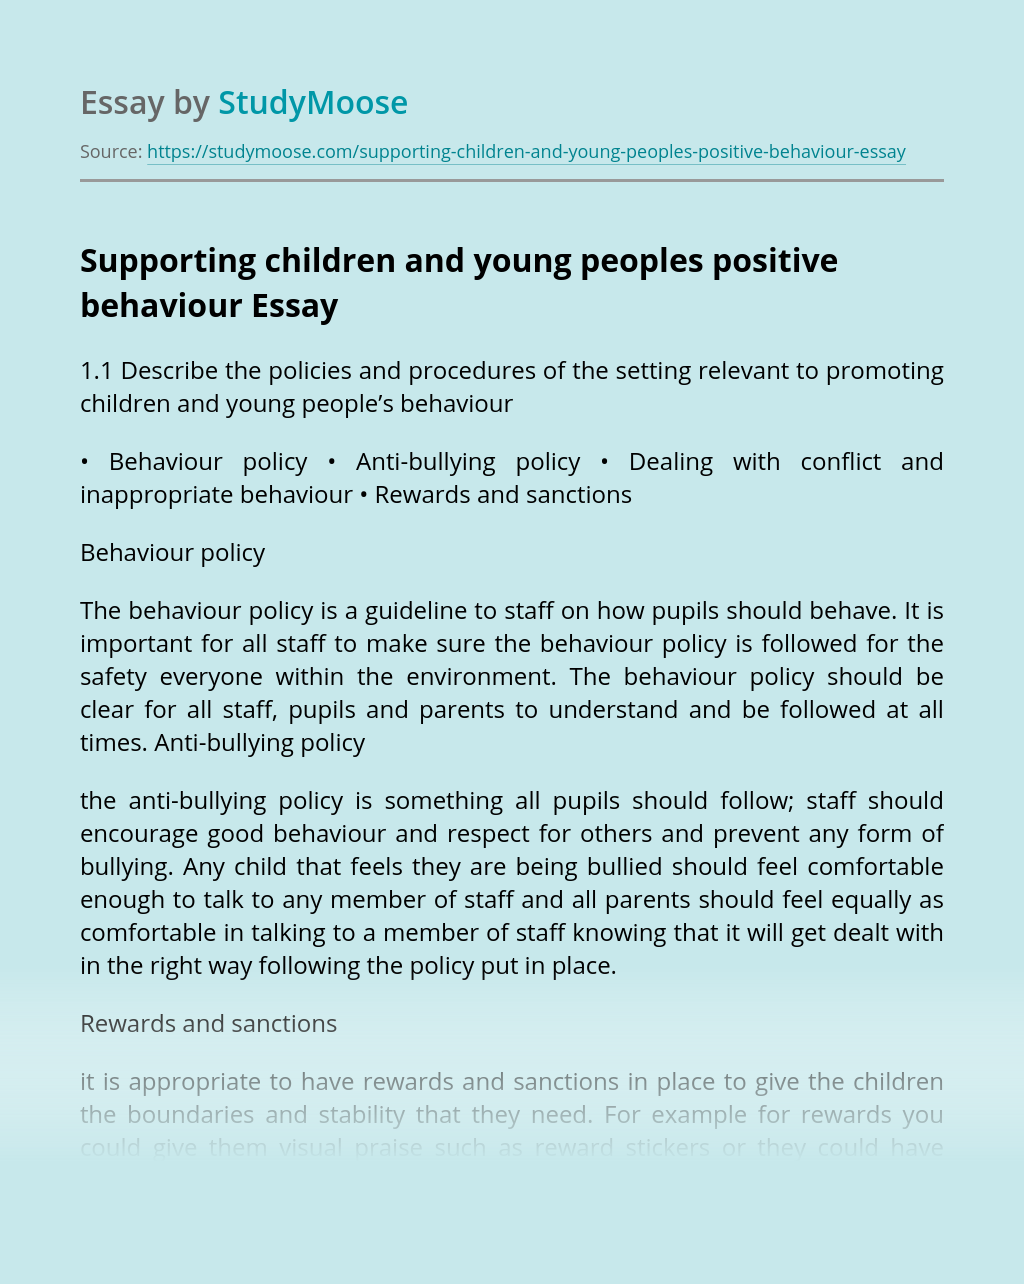 Supporting children and young peoples positive behaviour